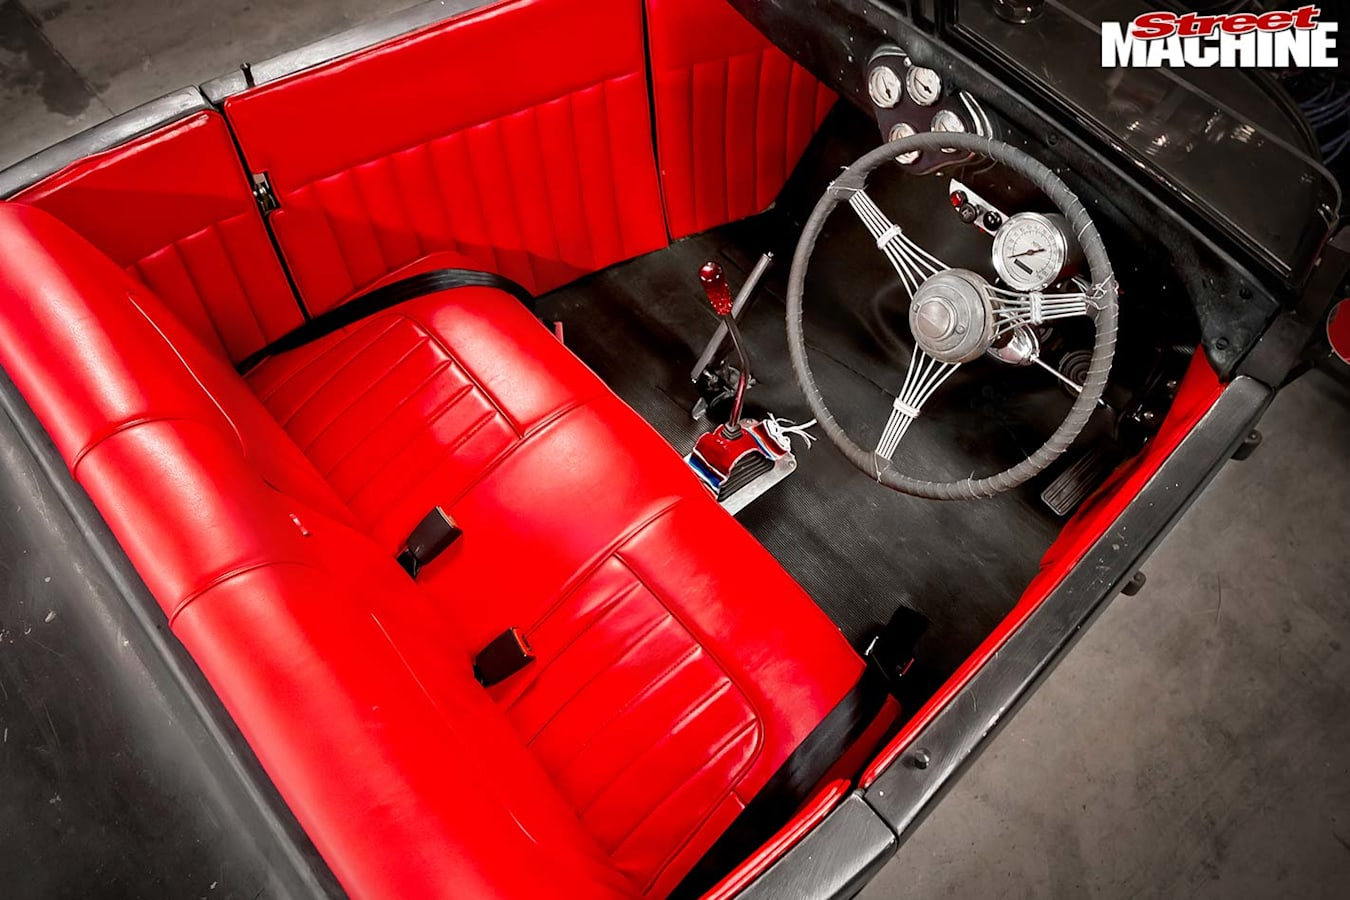 Ford Model A roadster interior